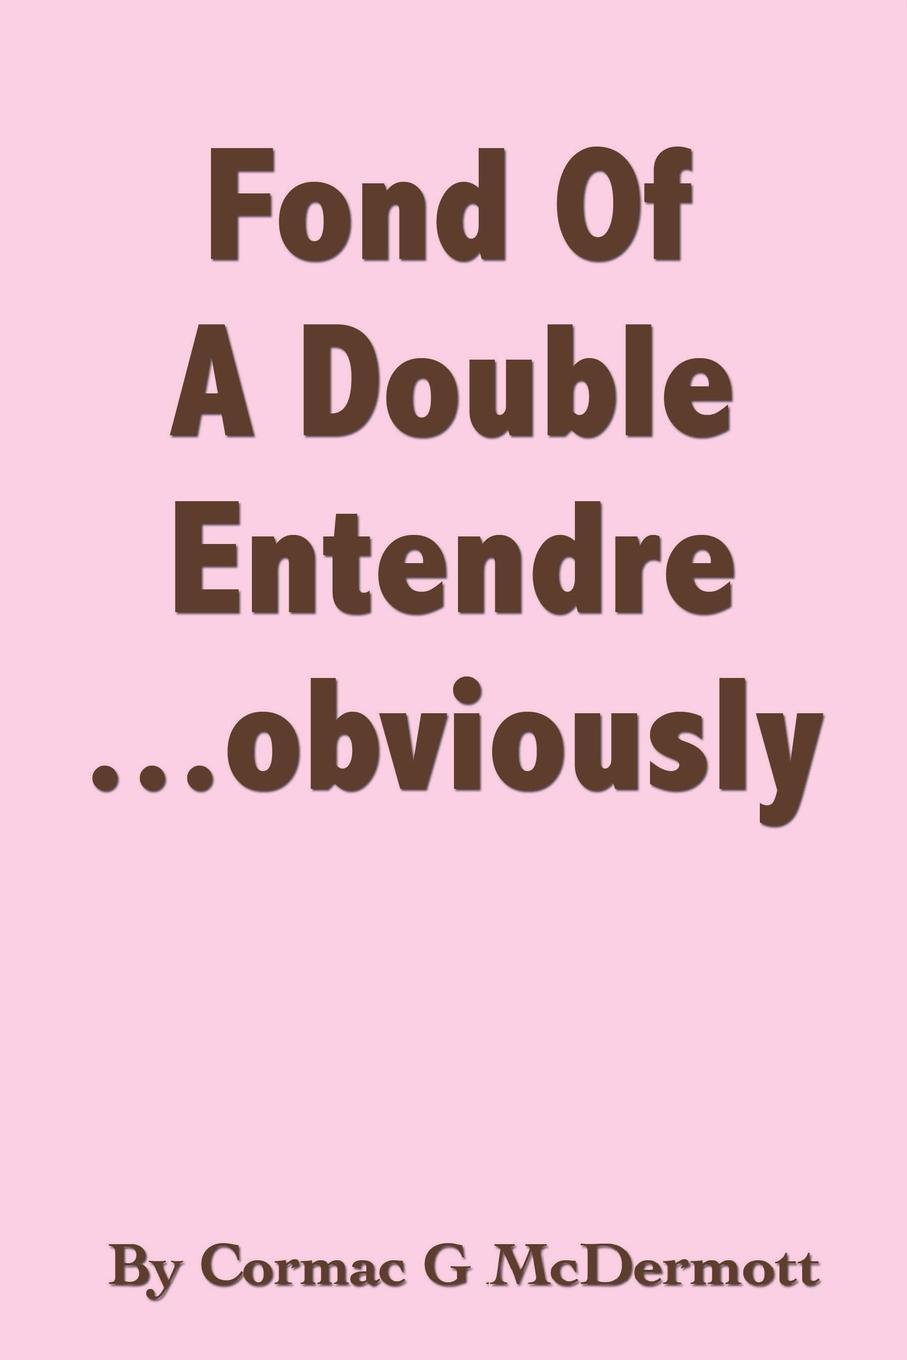 'Fond Of A Double Entendre.....obviously'